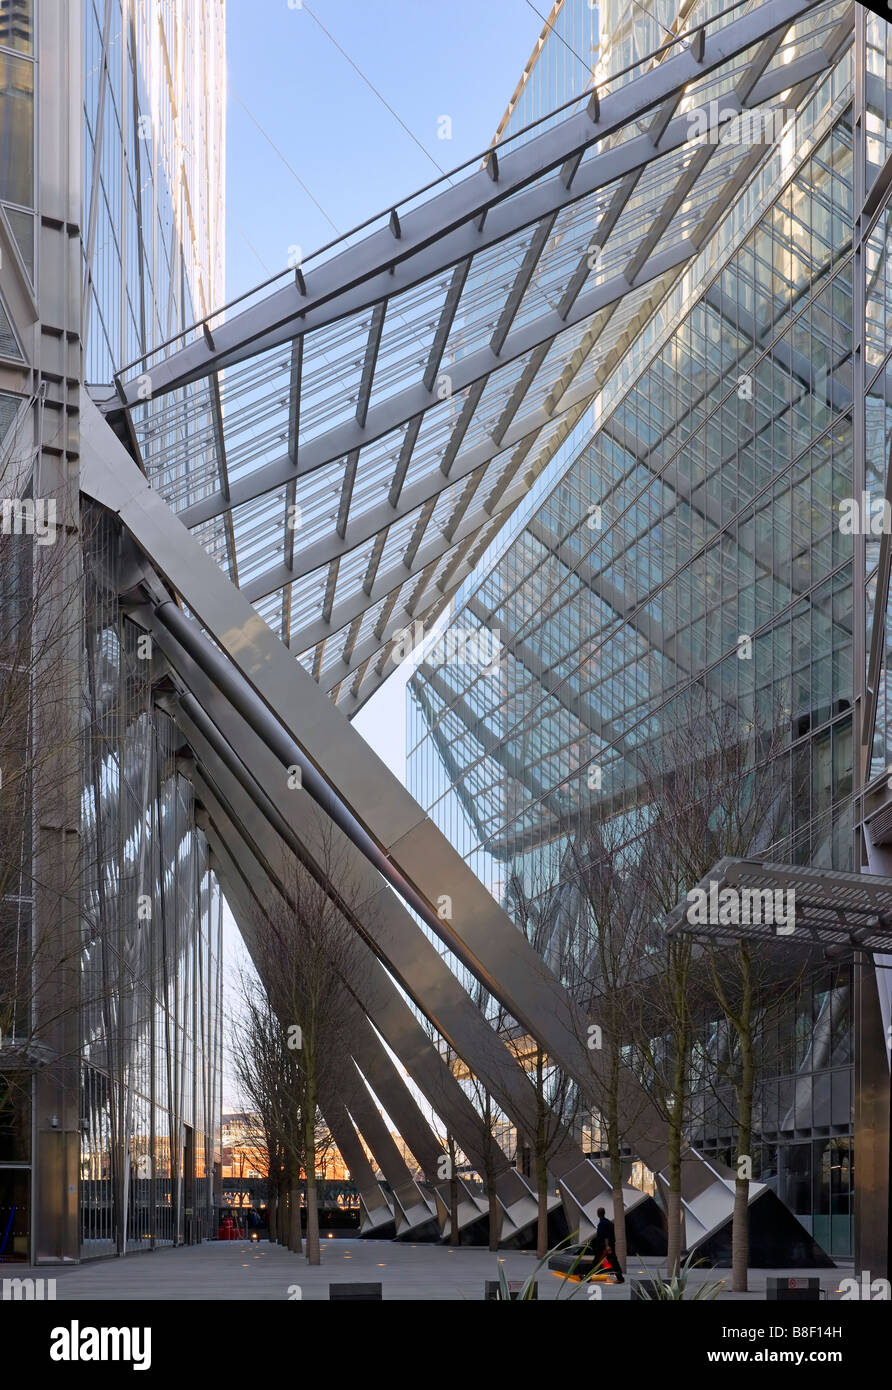 Broadgate Tower atrium or walkway - Stock Image